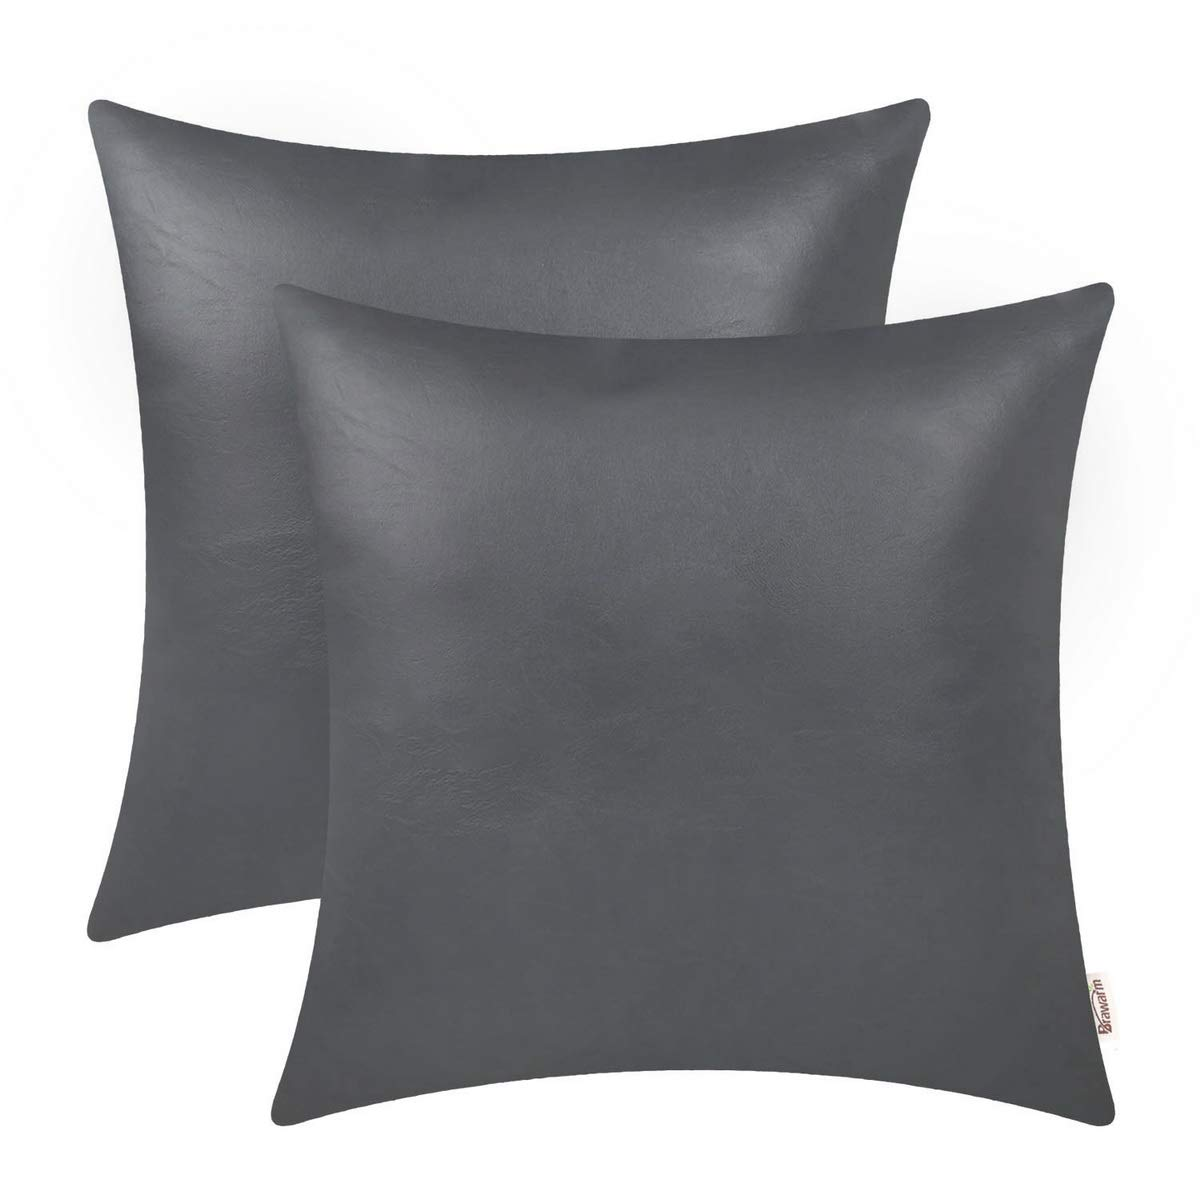 BRAWARM Pack of 2 Cozy Throw Pillow Covers Cases for Couch Sofa Home Decoration Solid Dyed Soft Faux Leather Both Sides 22 X 22 Inches Charcoal Gray